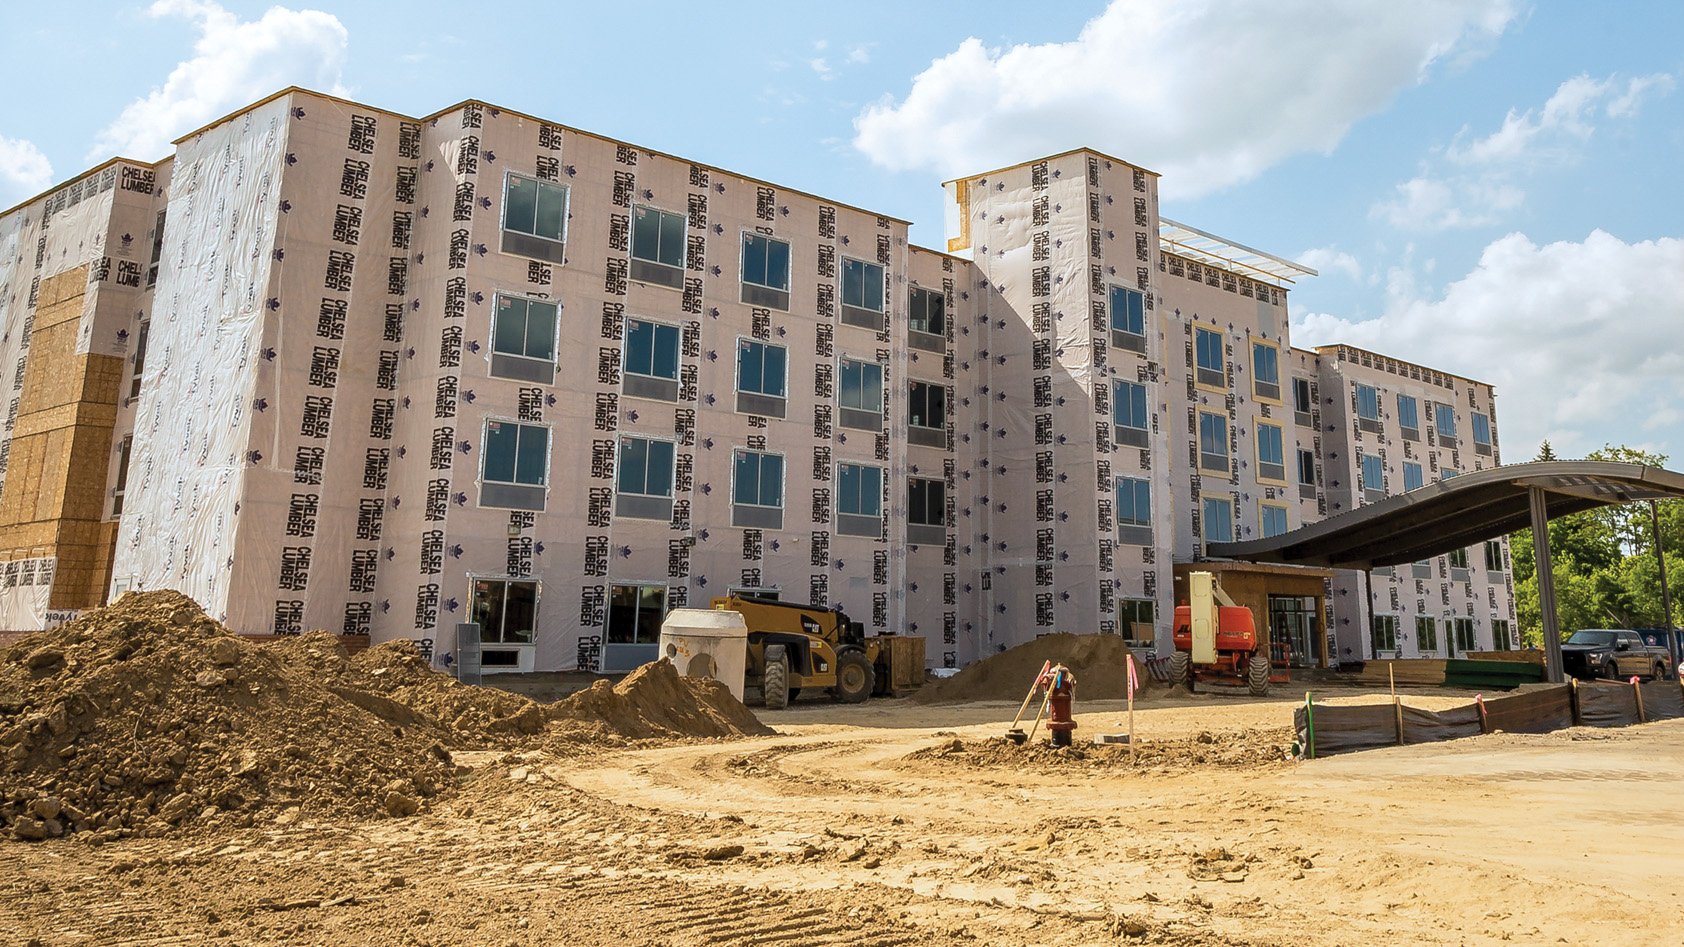 Construction of Fairfield Inn & Suites, Grand Blanc Twp, MI